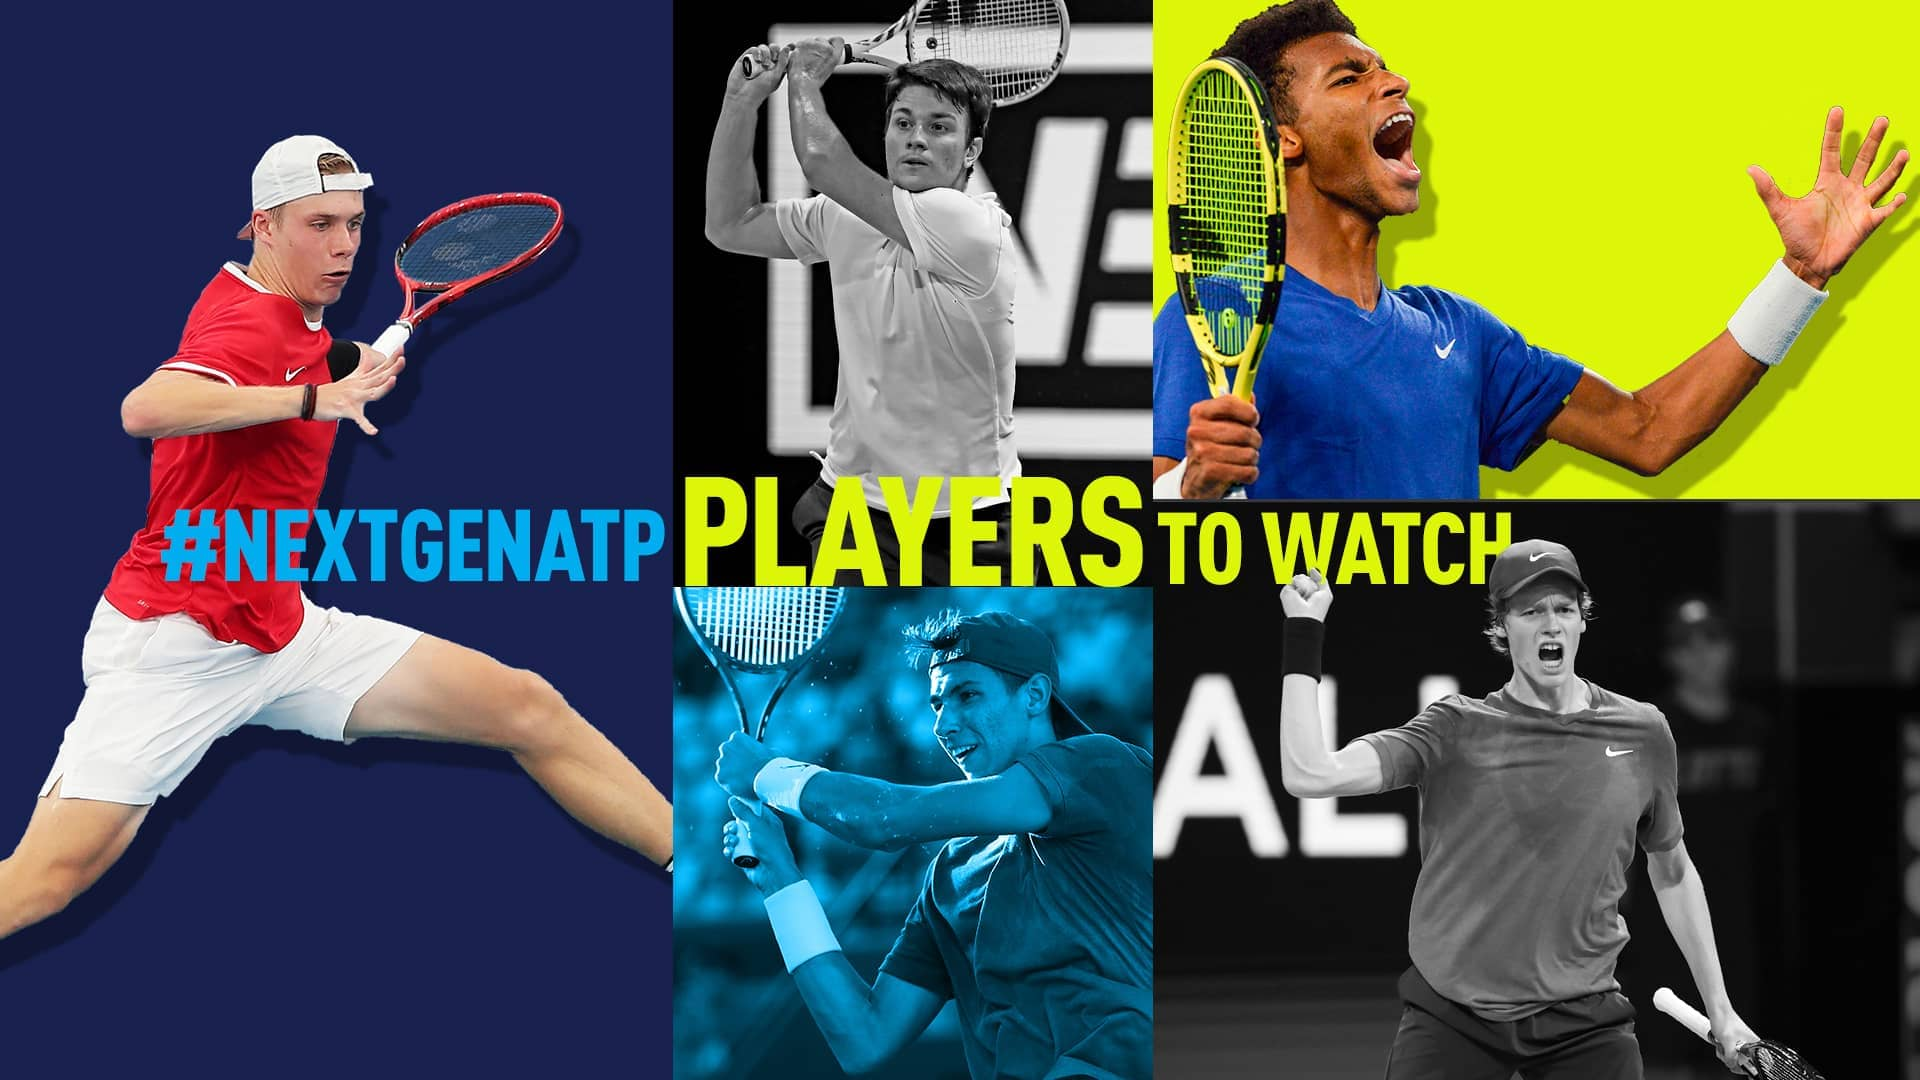 #NextGenATP To Watch in Melbourne